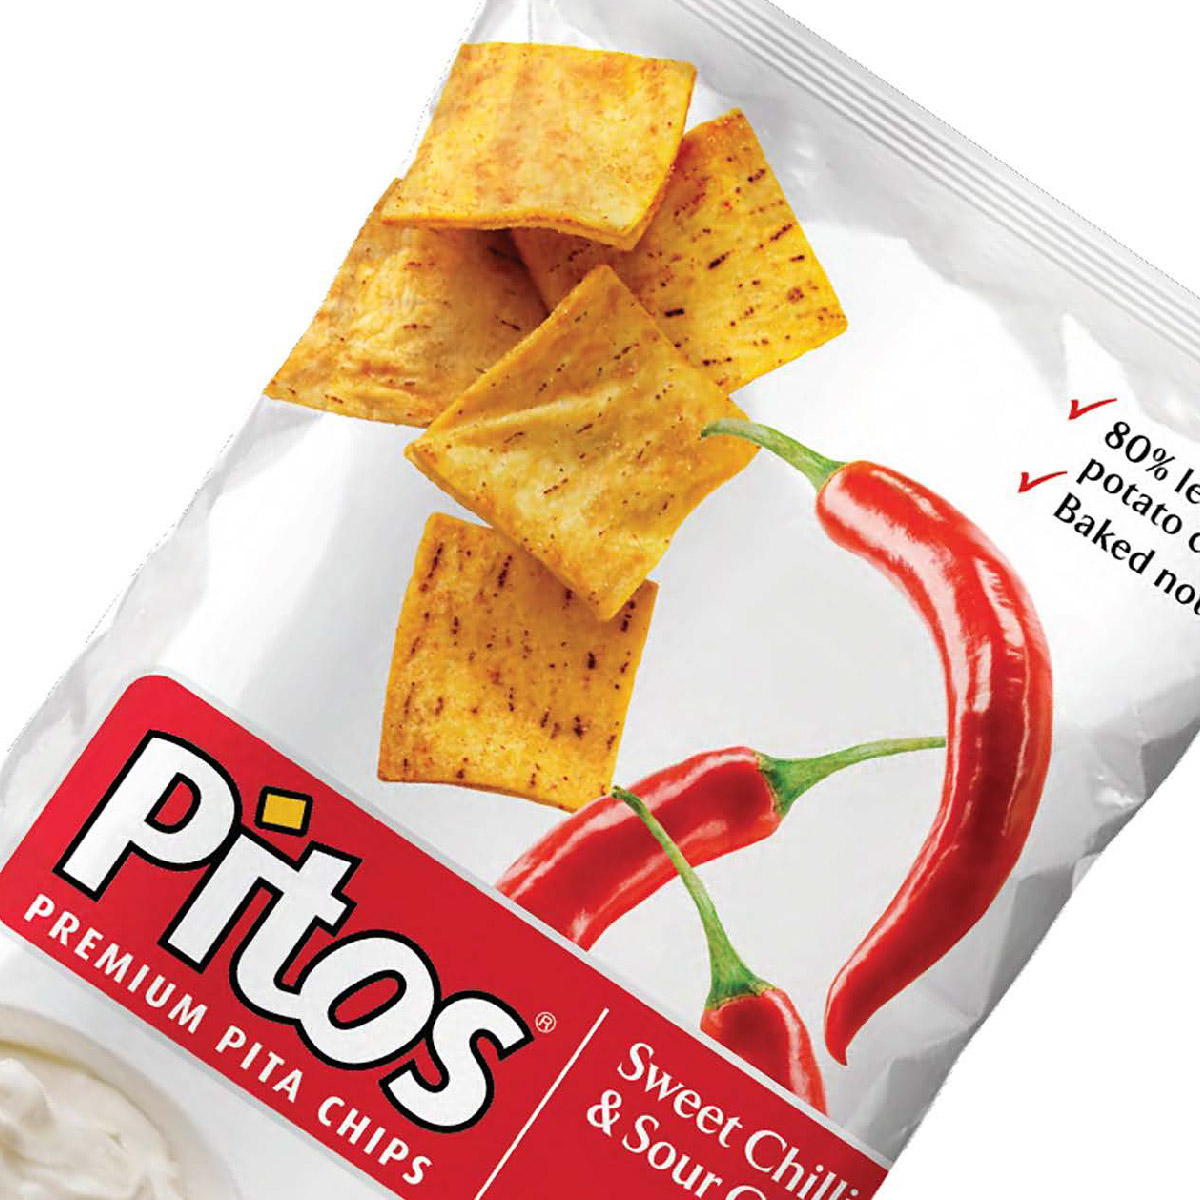 Pitos Premium Pita Chips Packaging Design